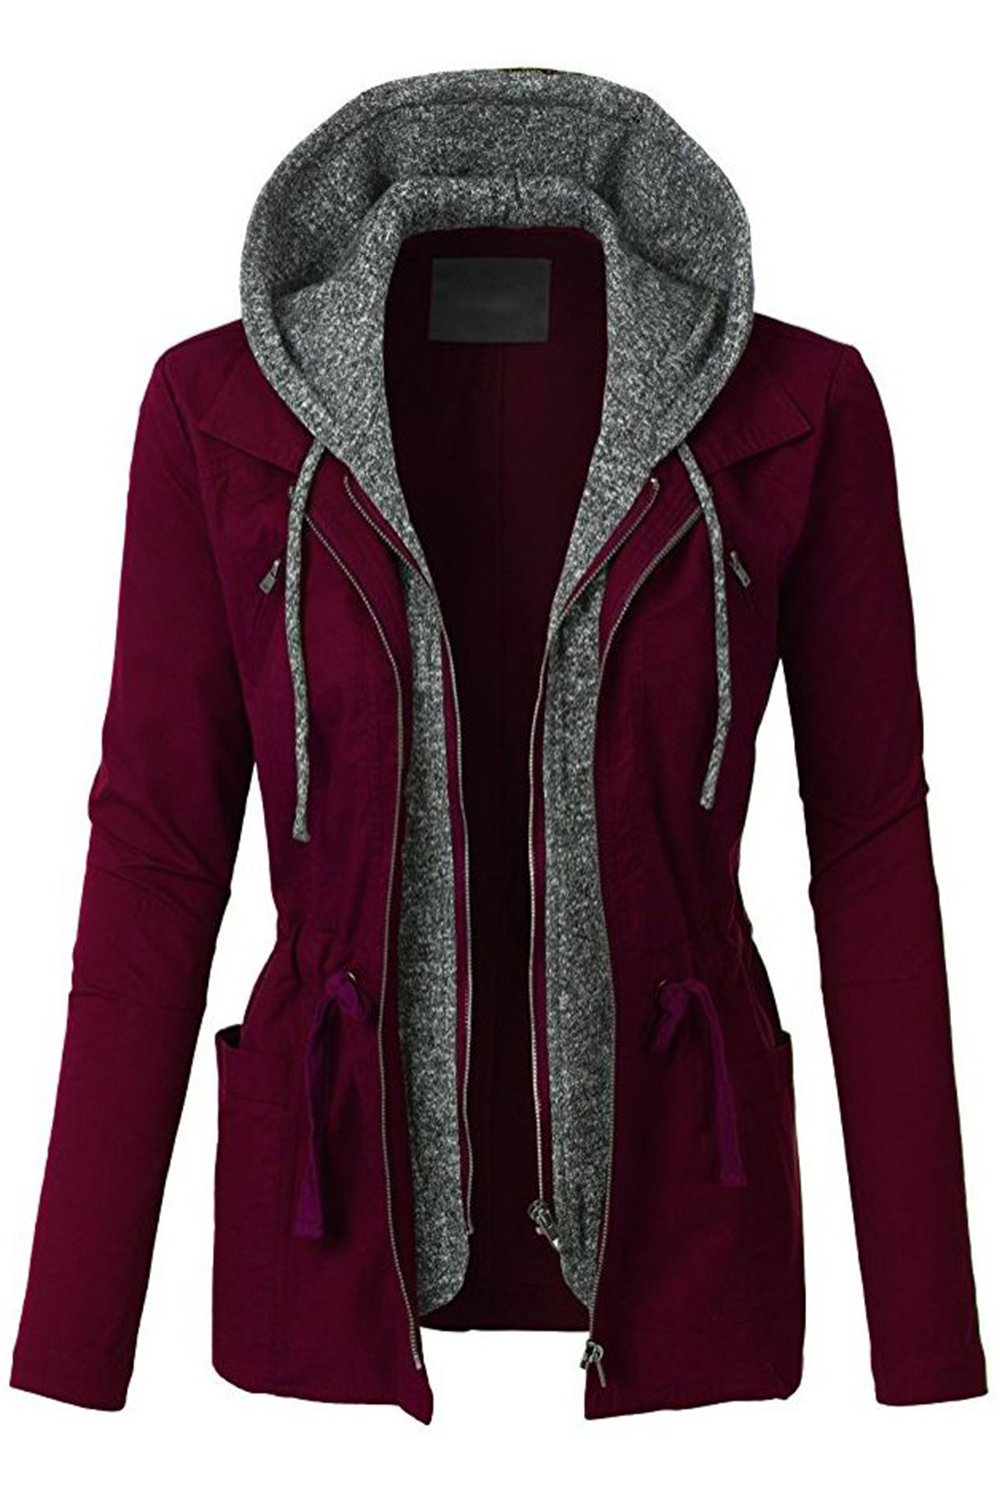 FASHION BOOMY Womens Zip Up Military Anorak Jacket W/Hood (Large, NL_Wine)